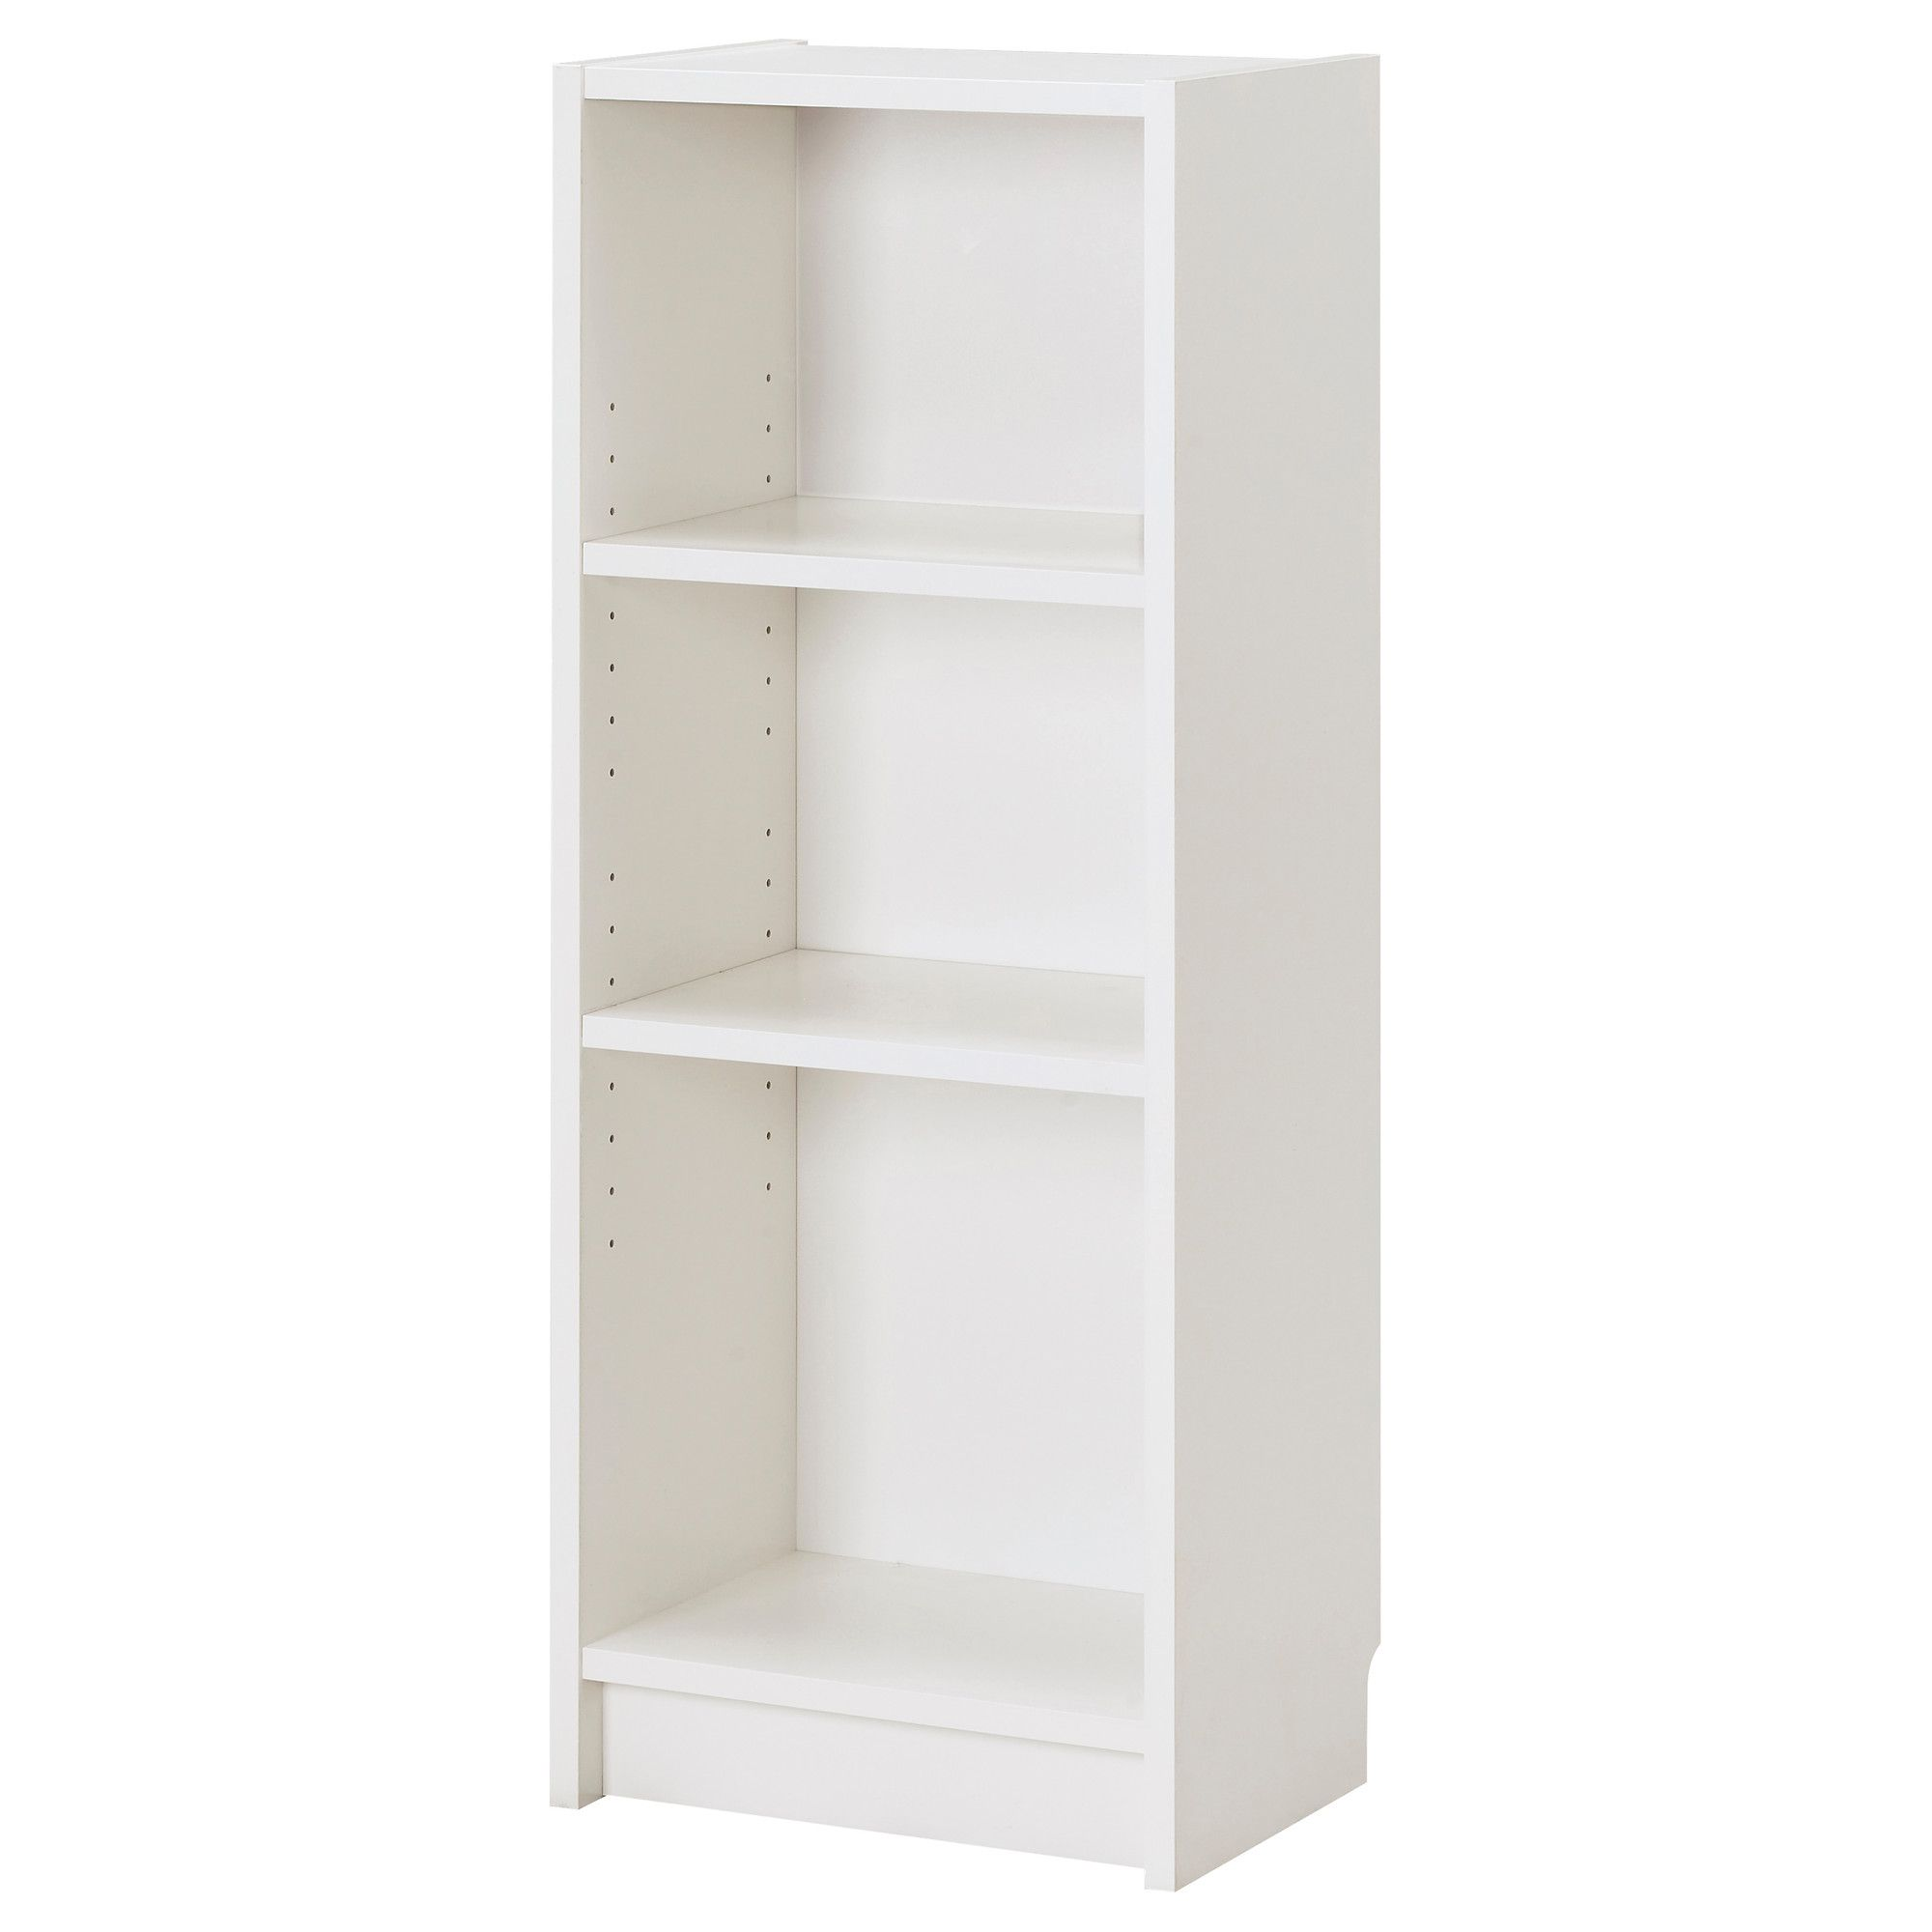 Ikea Billy Bookcase White Billy Bookcase White Ikea 40x28x106 Price39 Laundry